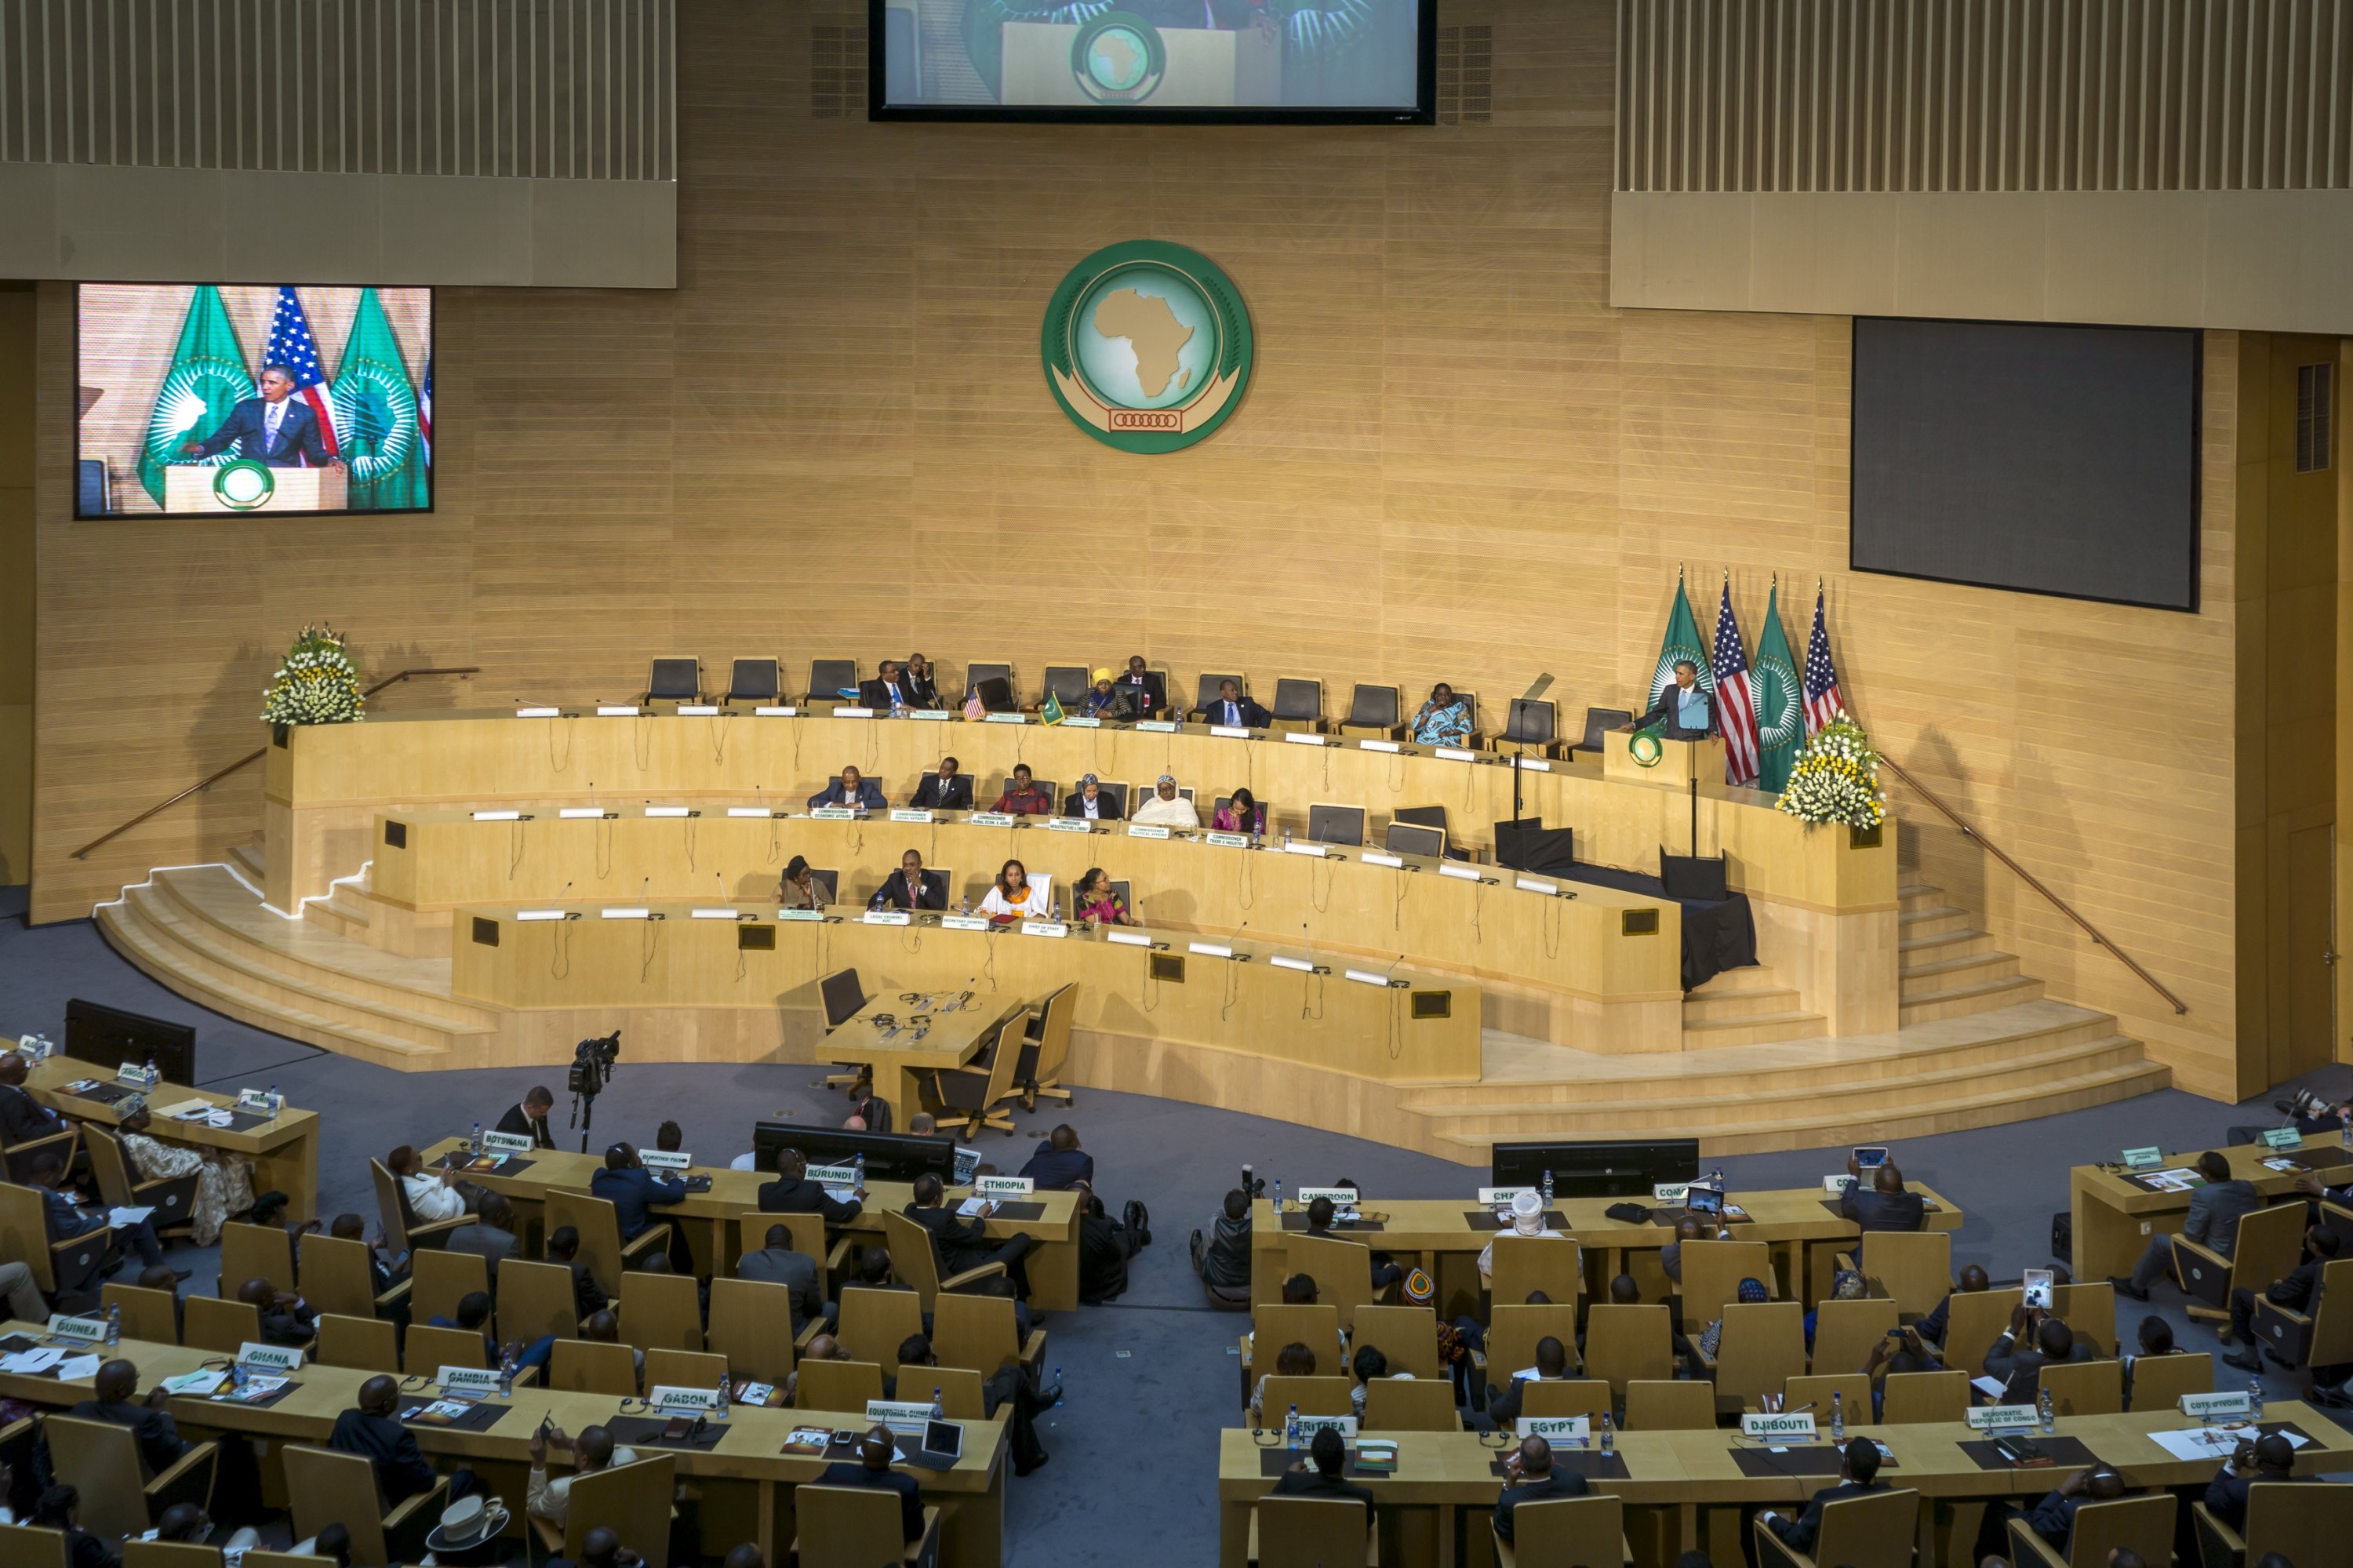 Former U.S. President Obama delivers a keynote speech to the African continent and its leaders at the Nelson Mandela Hall of the African Union in Addis Ababa, Ethiopia on July 28, 2015. (Shutterstock Photo)